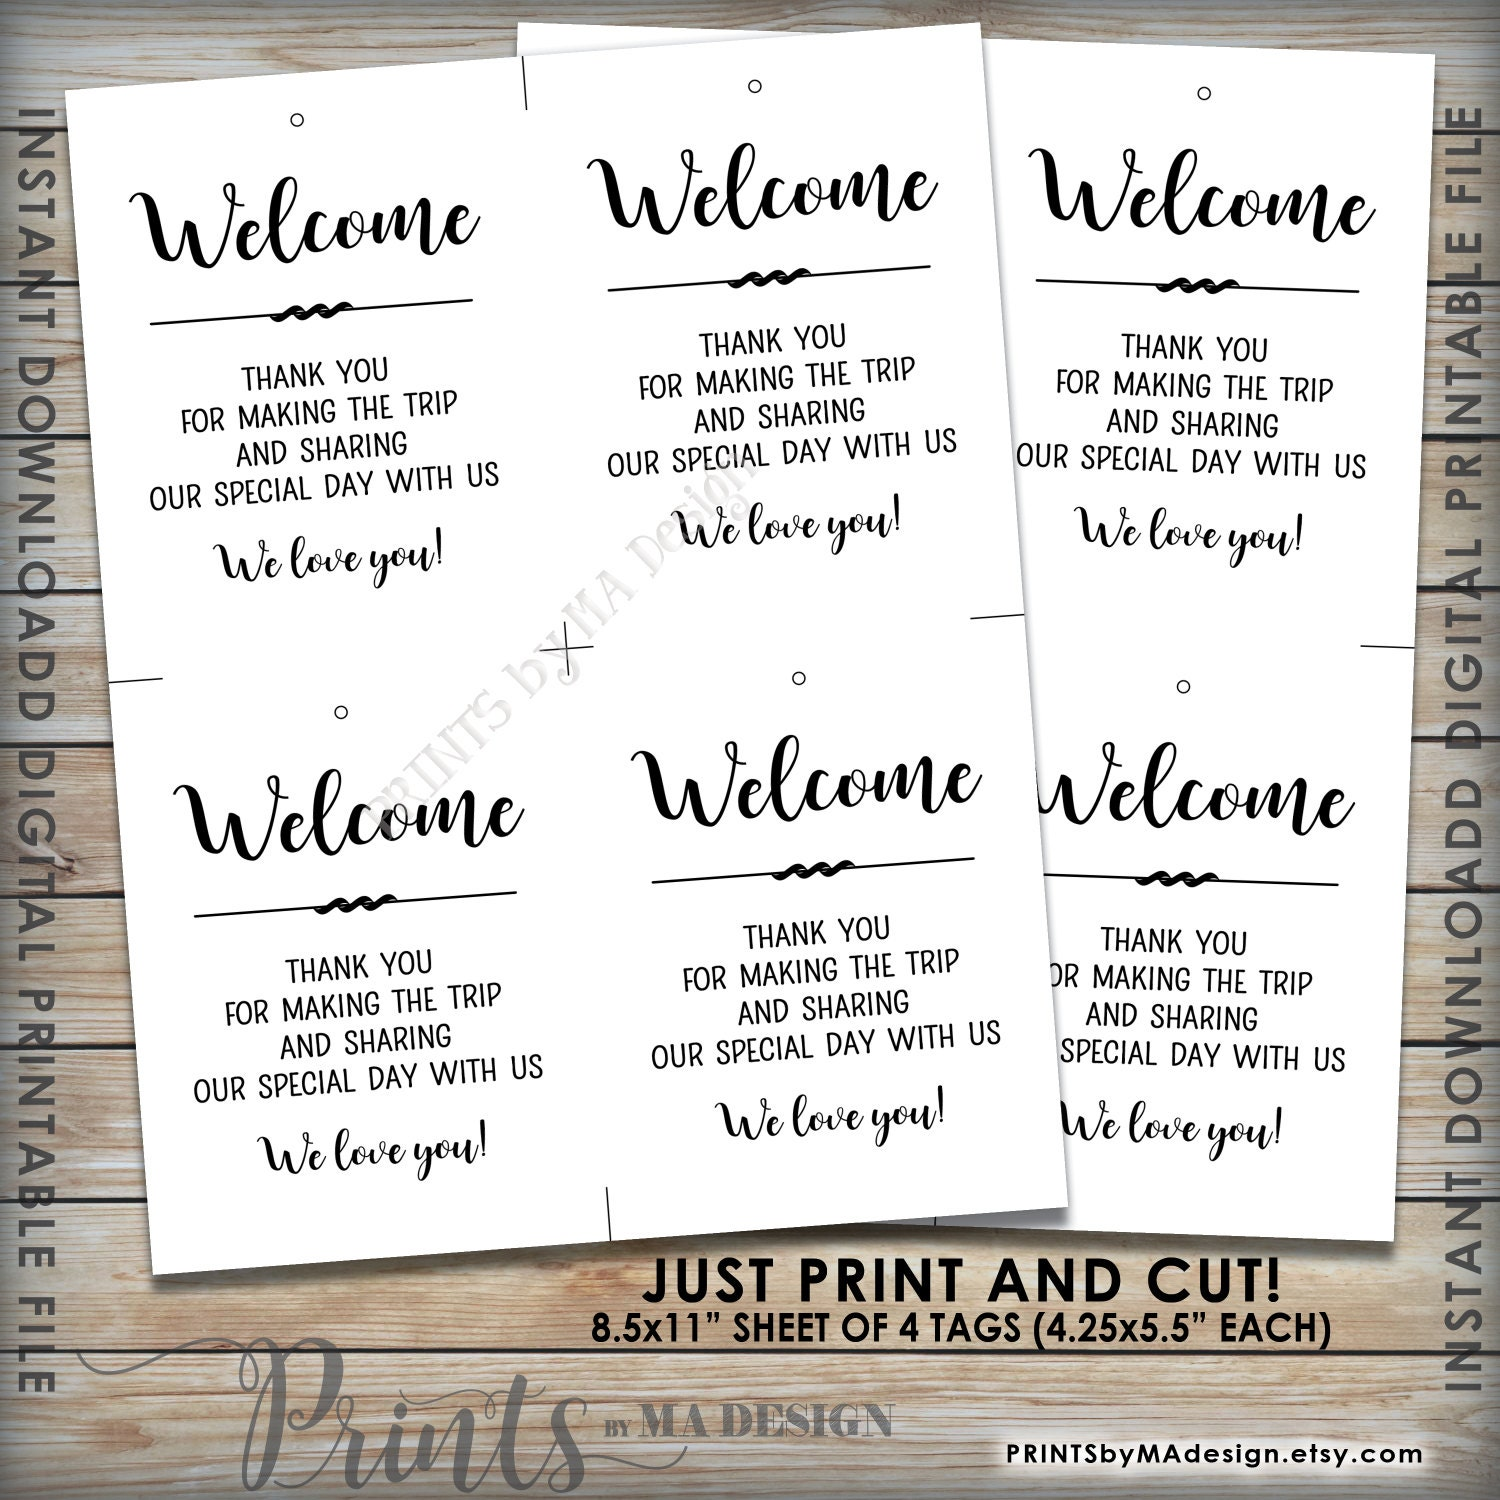 Gifts For Out Of Town Wedding Guests: Wedding Tags, Welcome Bag Tags, Hotel Gift, Out Of Town